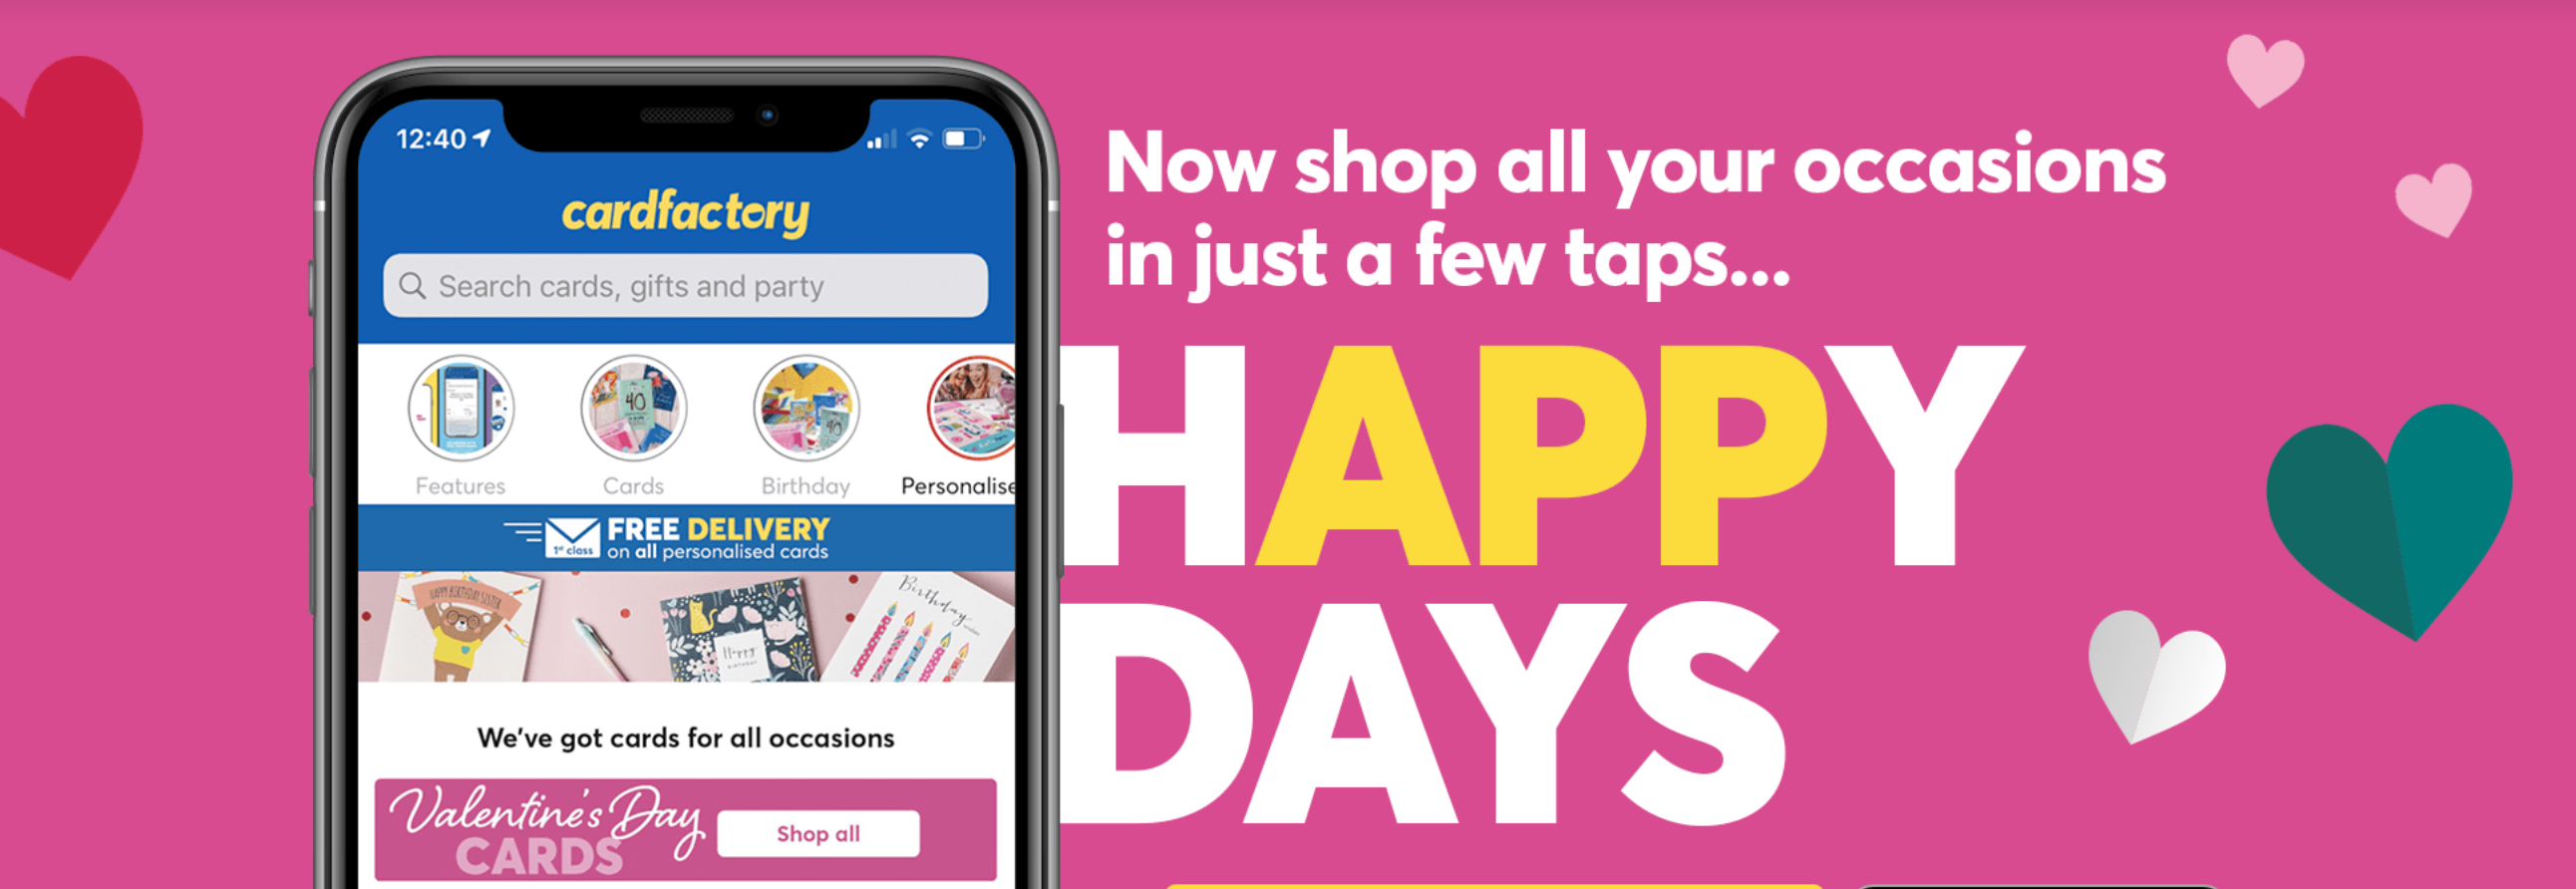 Above: Unable to trade physically during the lockdowns, Card Factory has ramped up with online presence, including the launch of an App.